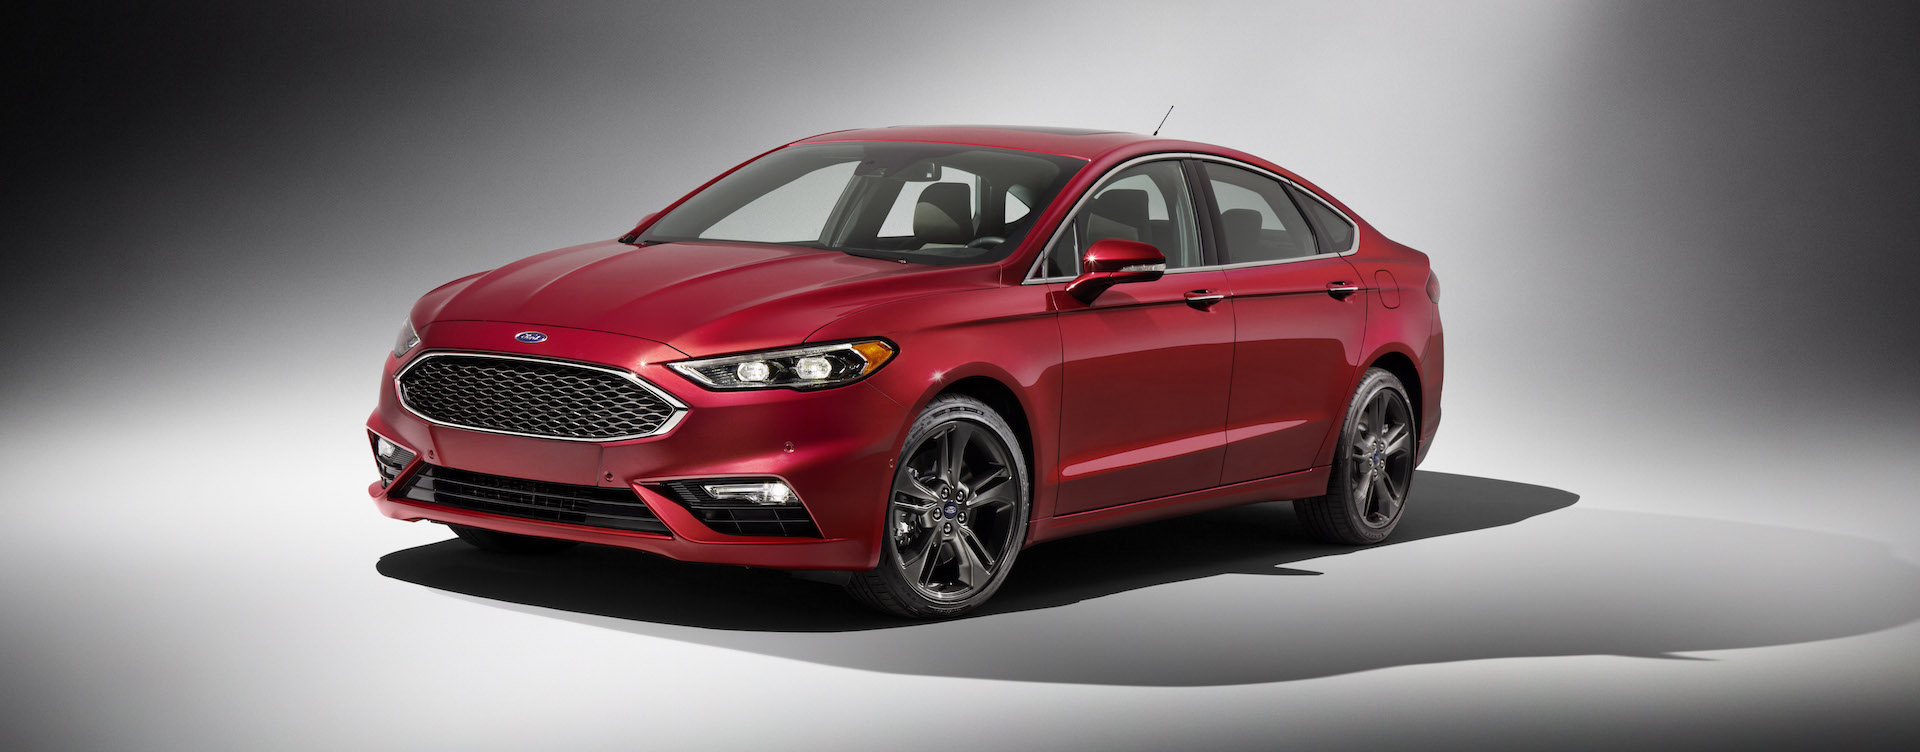 New and Used Ford Fusion: Prices, Photos, Reviews, Specs - The Car Connection